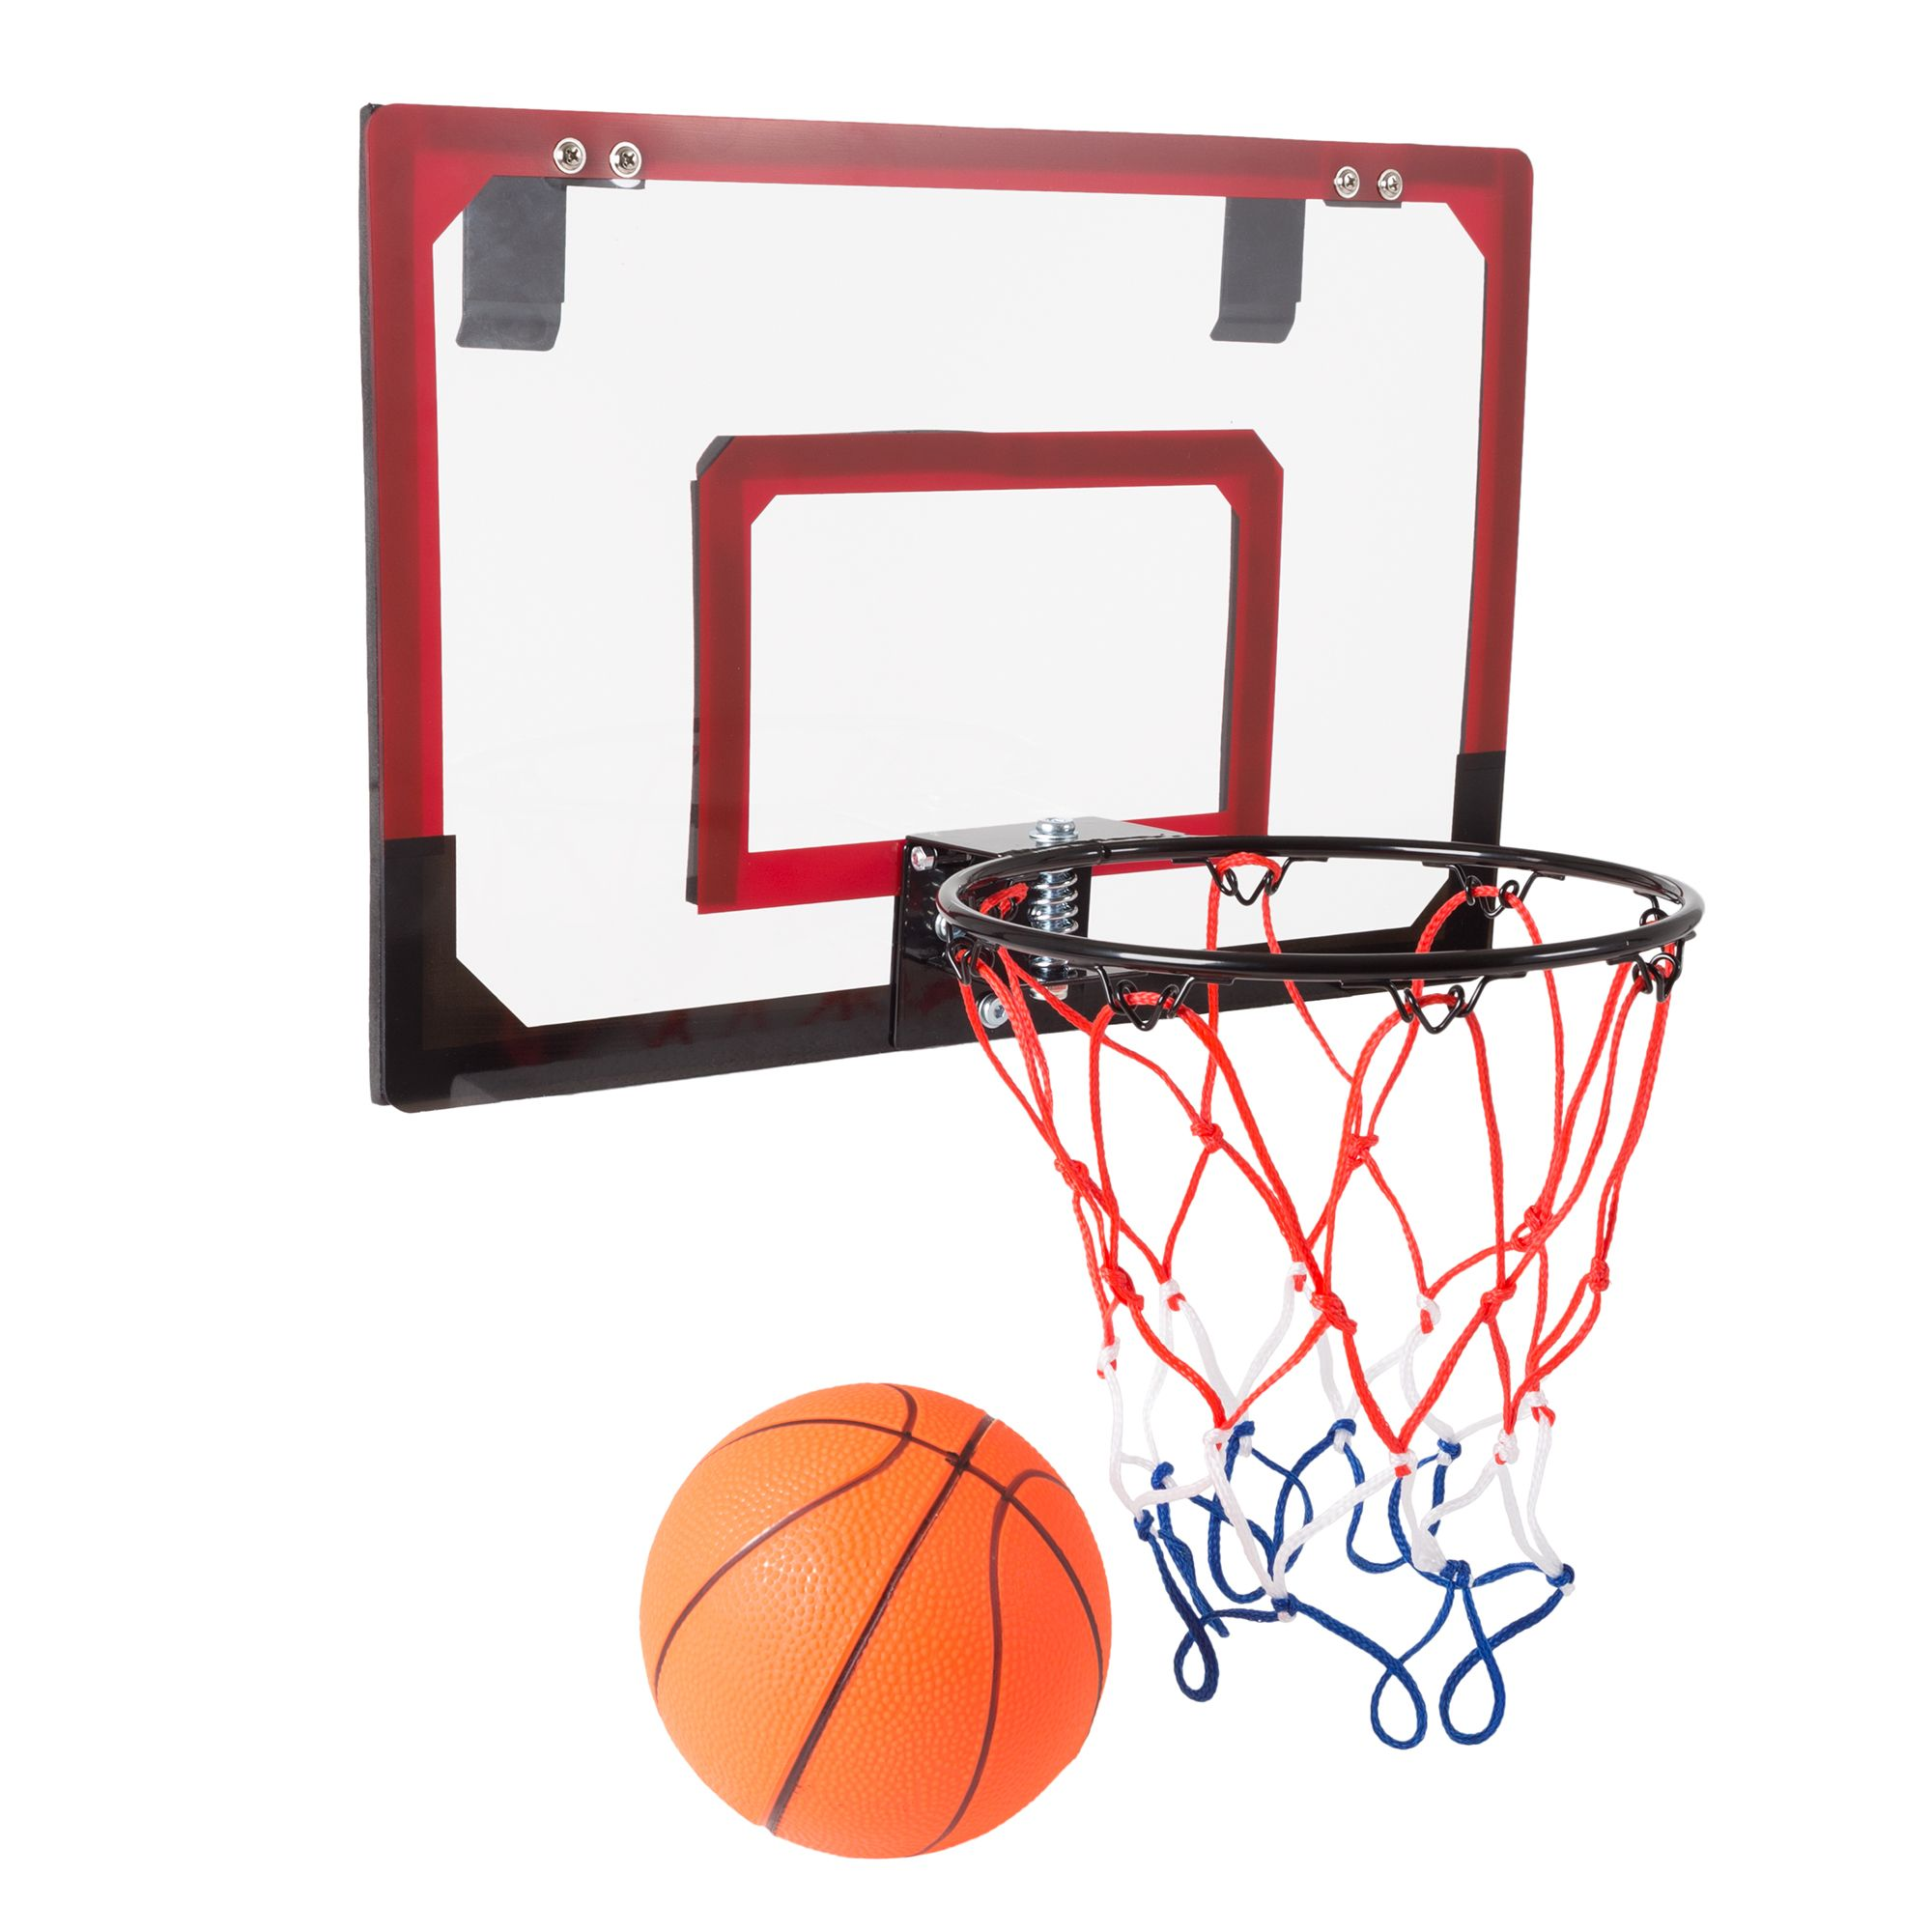 Mini Basketball Hoop With Ball And Breakaway Spring Rim For Over The Door Play By Hey Play Walmart Com Mini Basketball Hoop Mini Basketballs Basketball Hoop